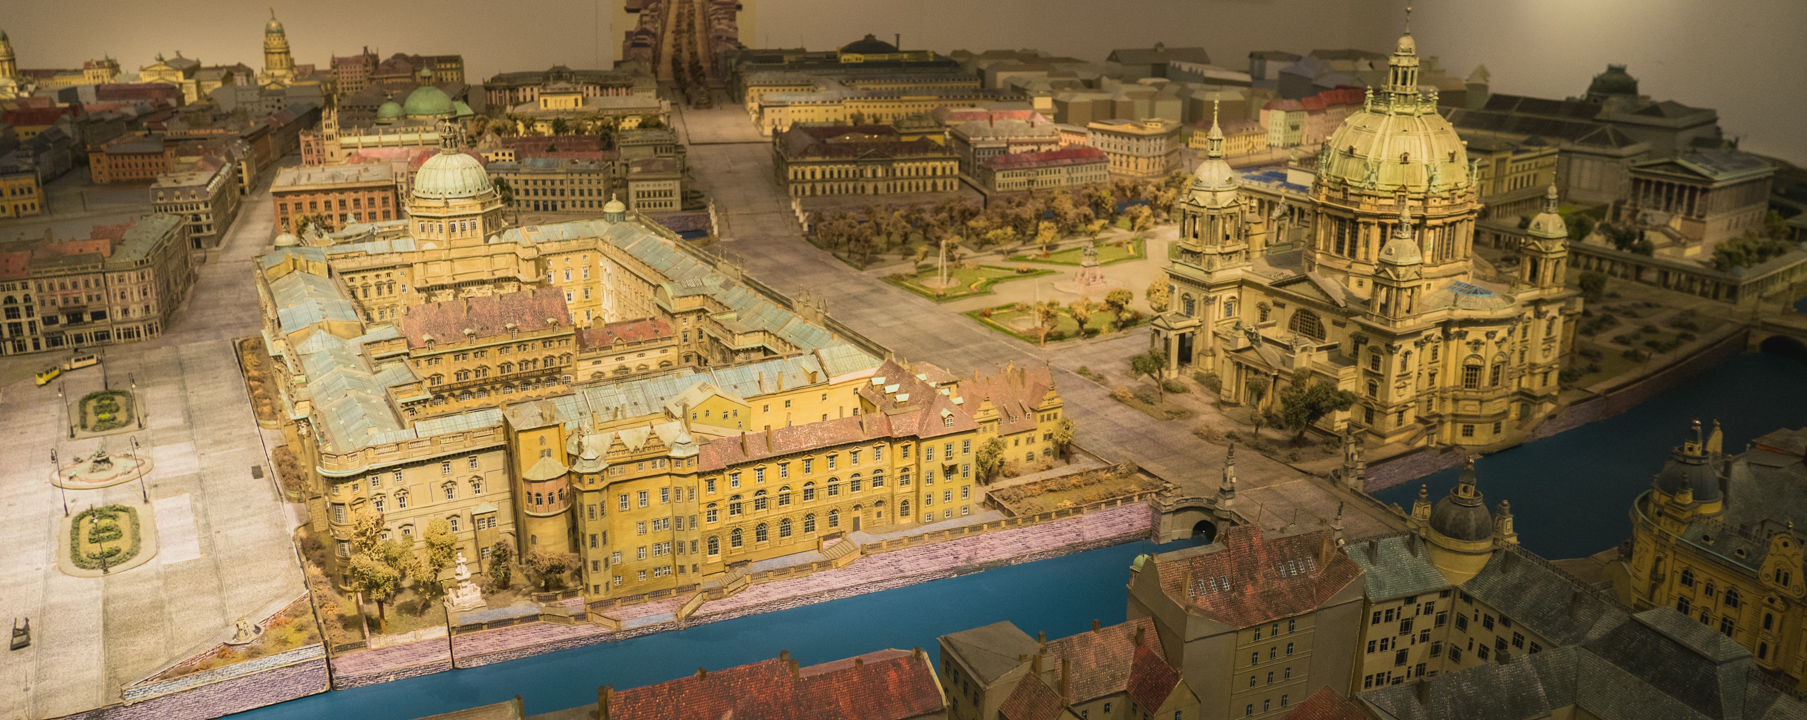 The berlin city palace a must see crazy magical project - Mobeltown berlin ...